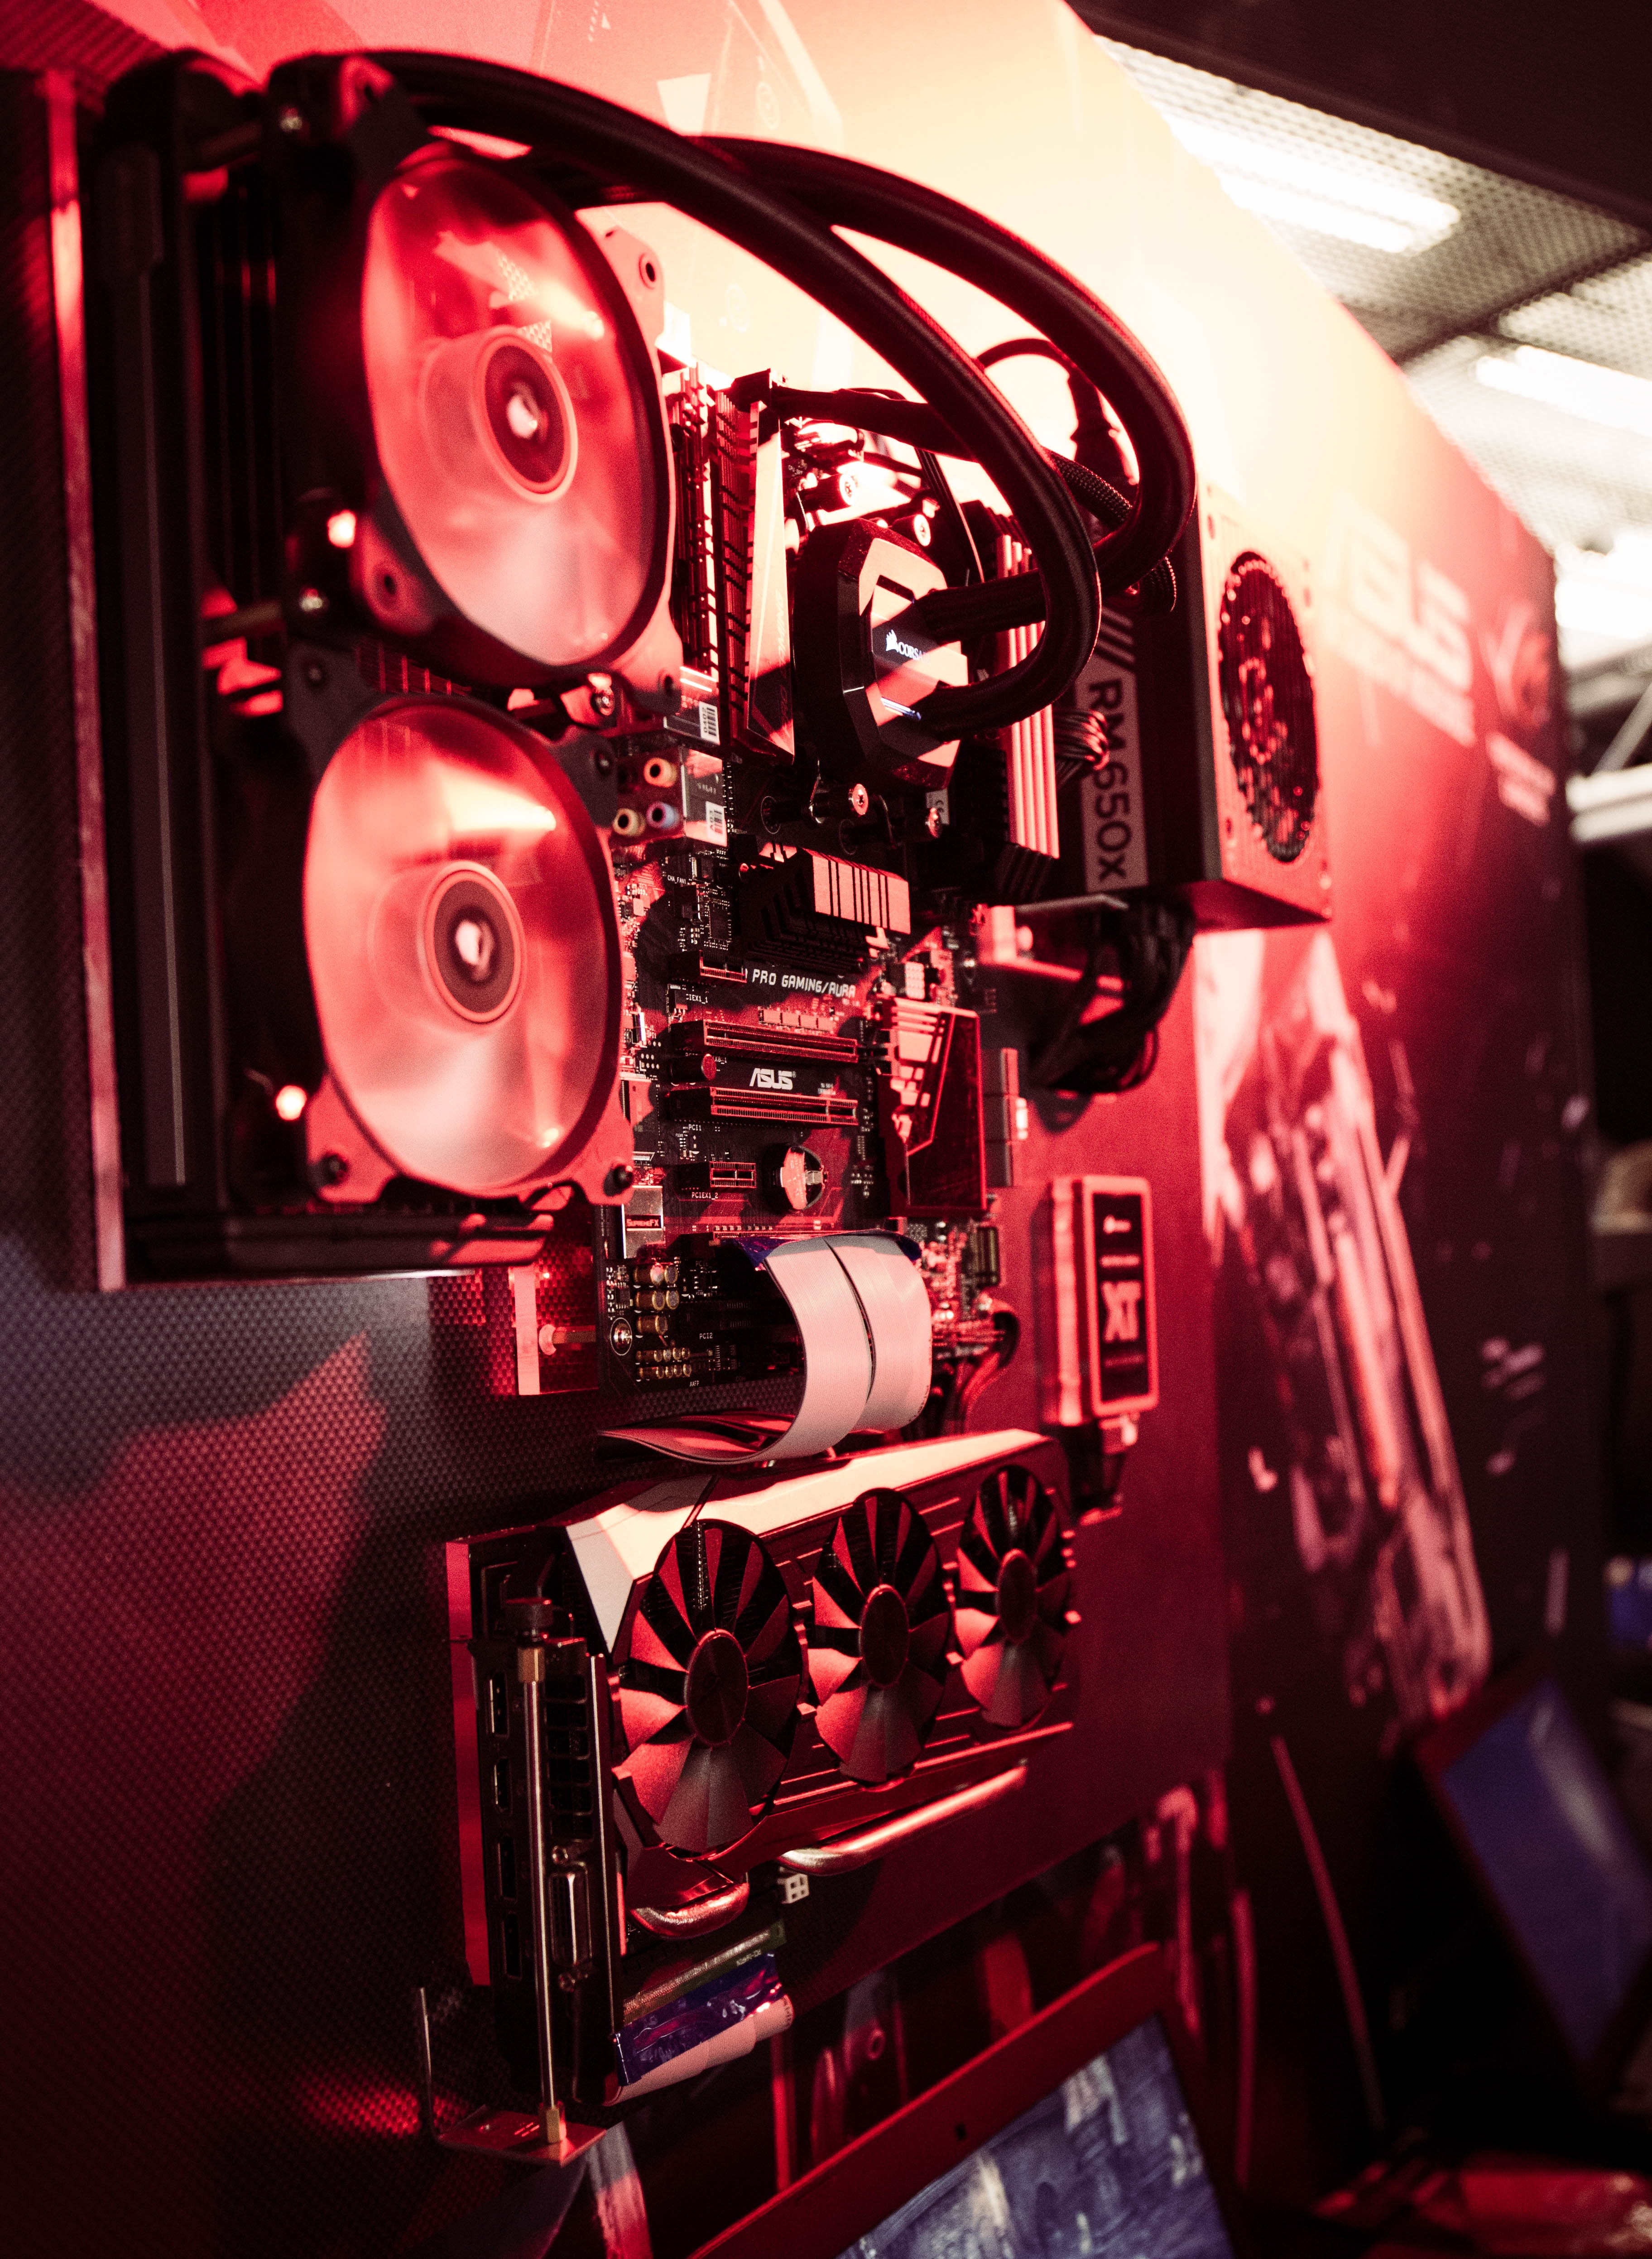 A computer without the case showing the motherboard, cooling fans, graphics cards, and power supply mounted on a red-lit wall labeled ASUS in a gaming convention